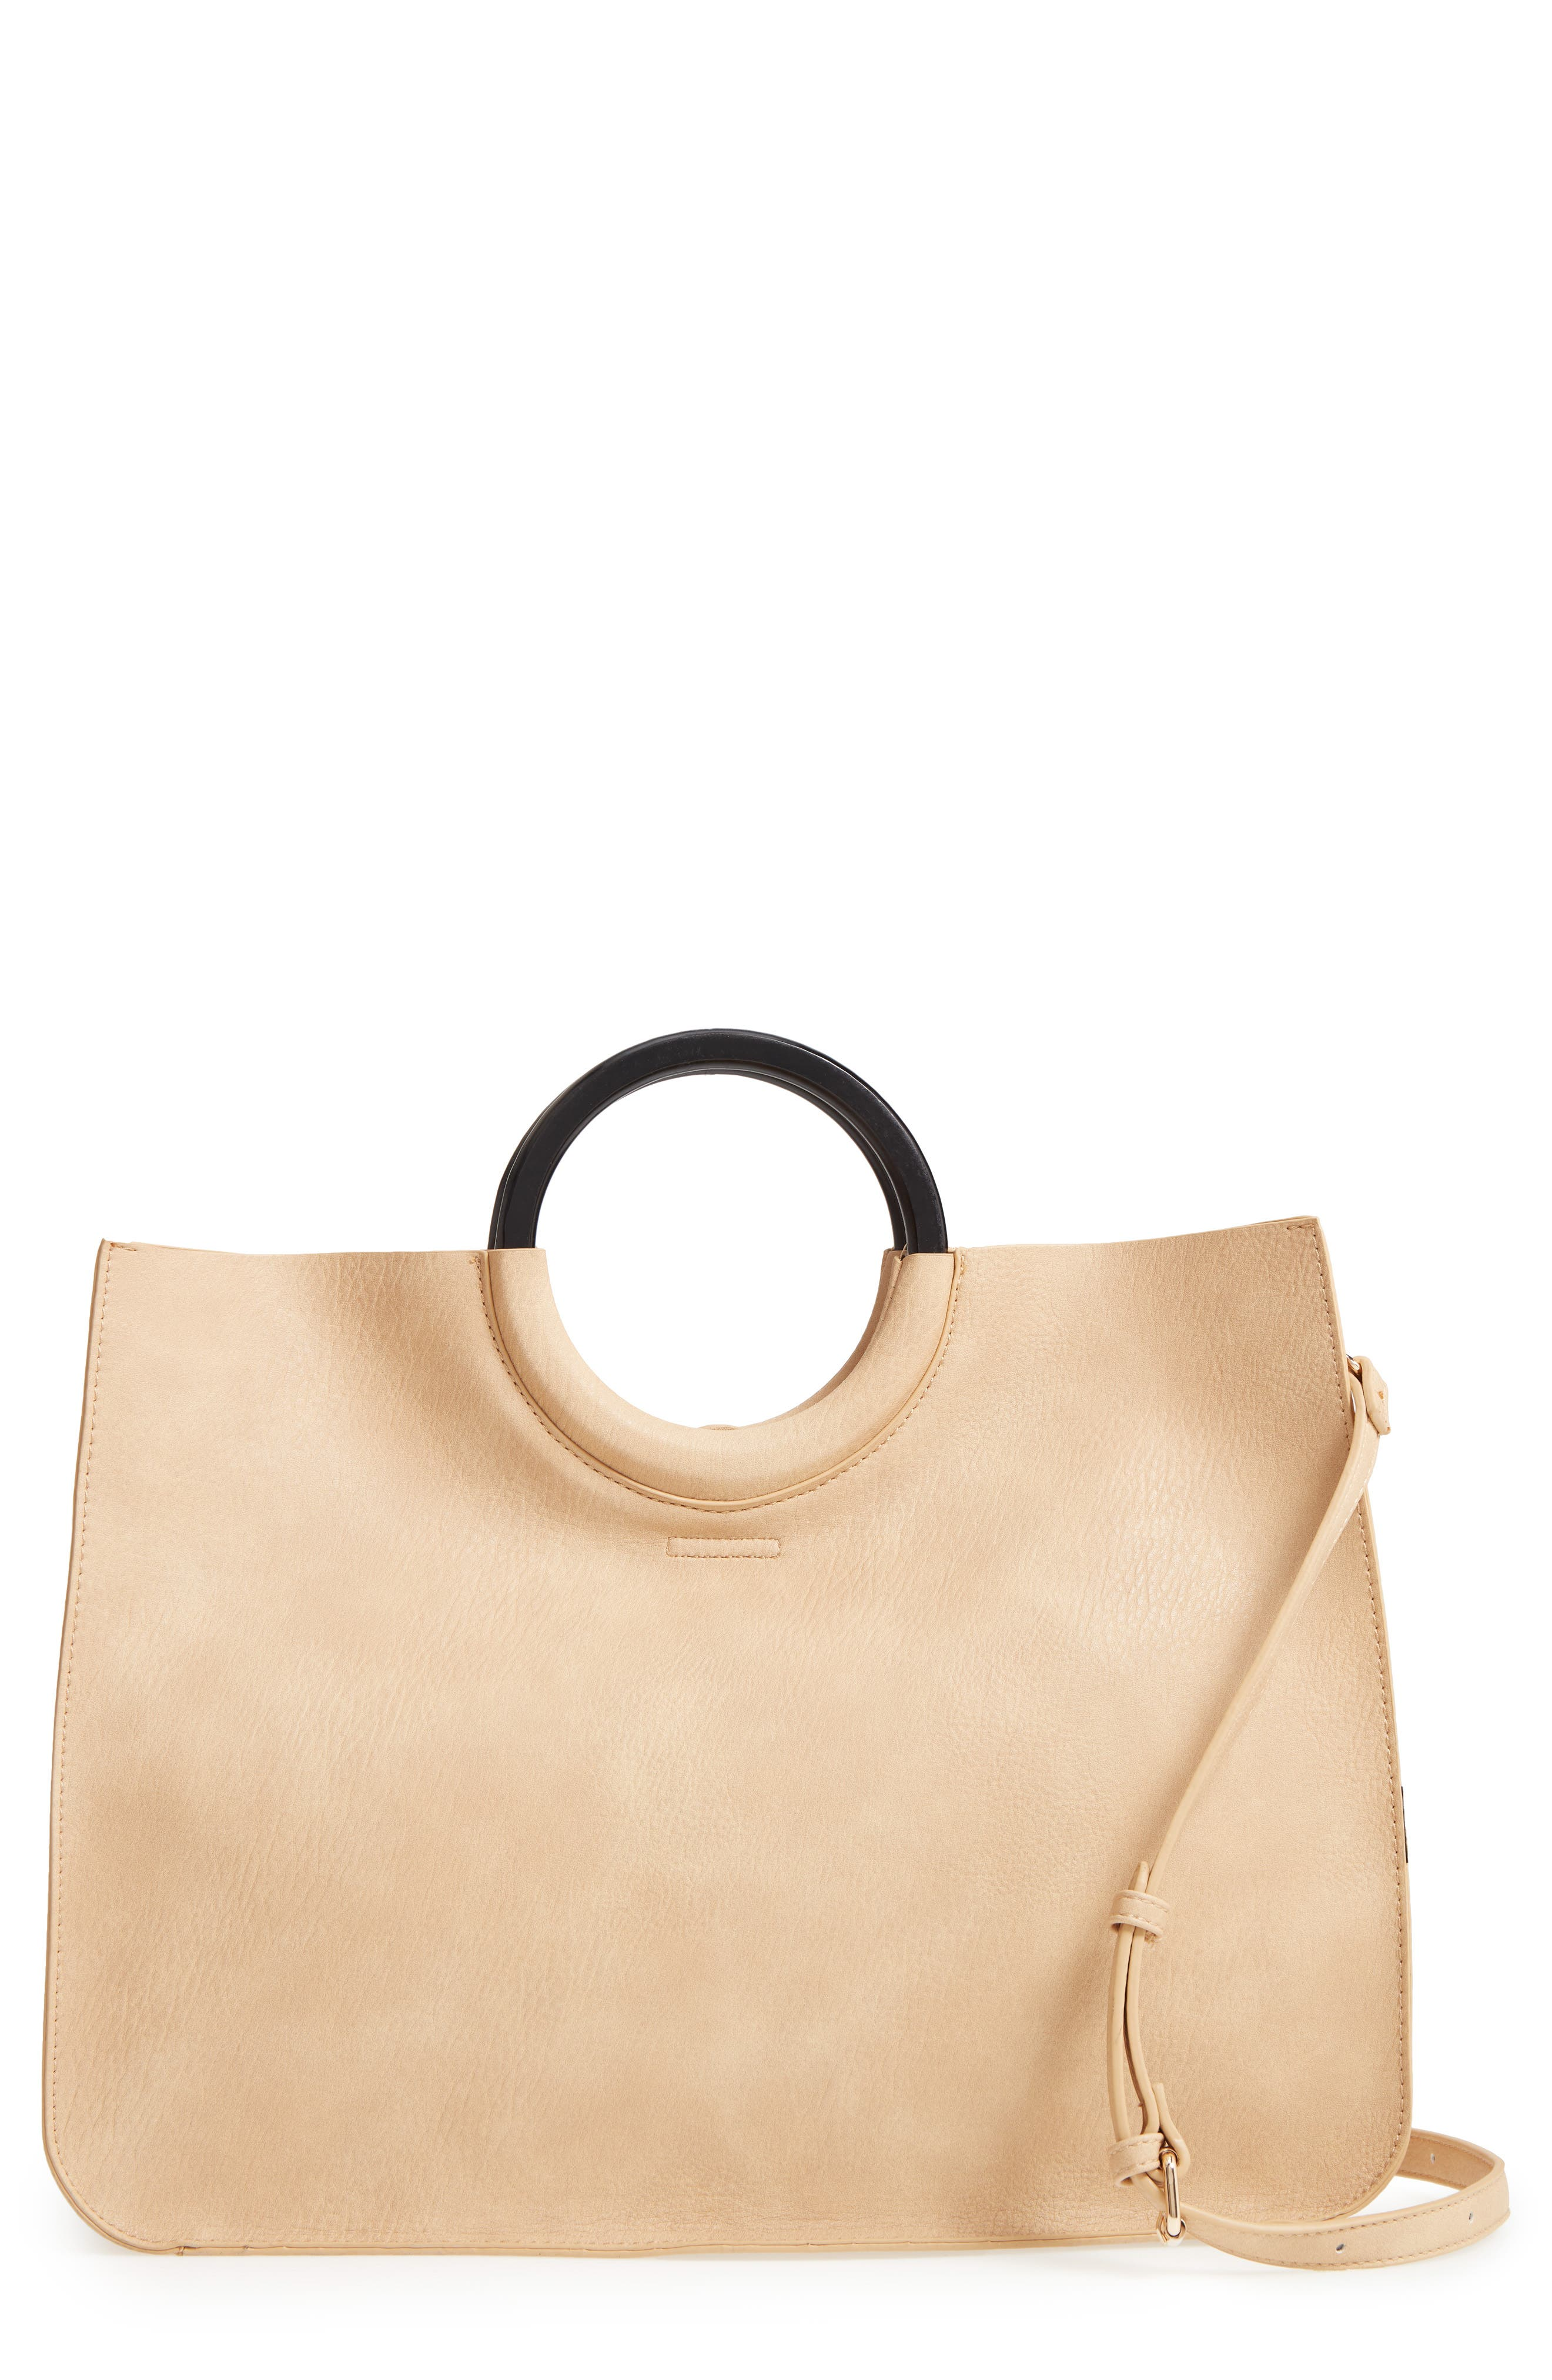 b7889047 BP. Tote Bags for Women: Leather, Coated Canvas, & Neoprene | Nordstrom